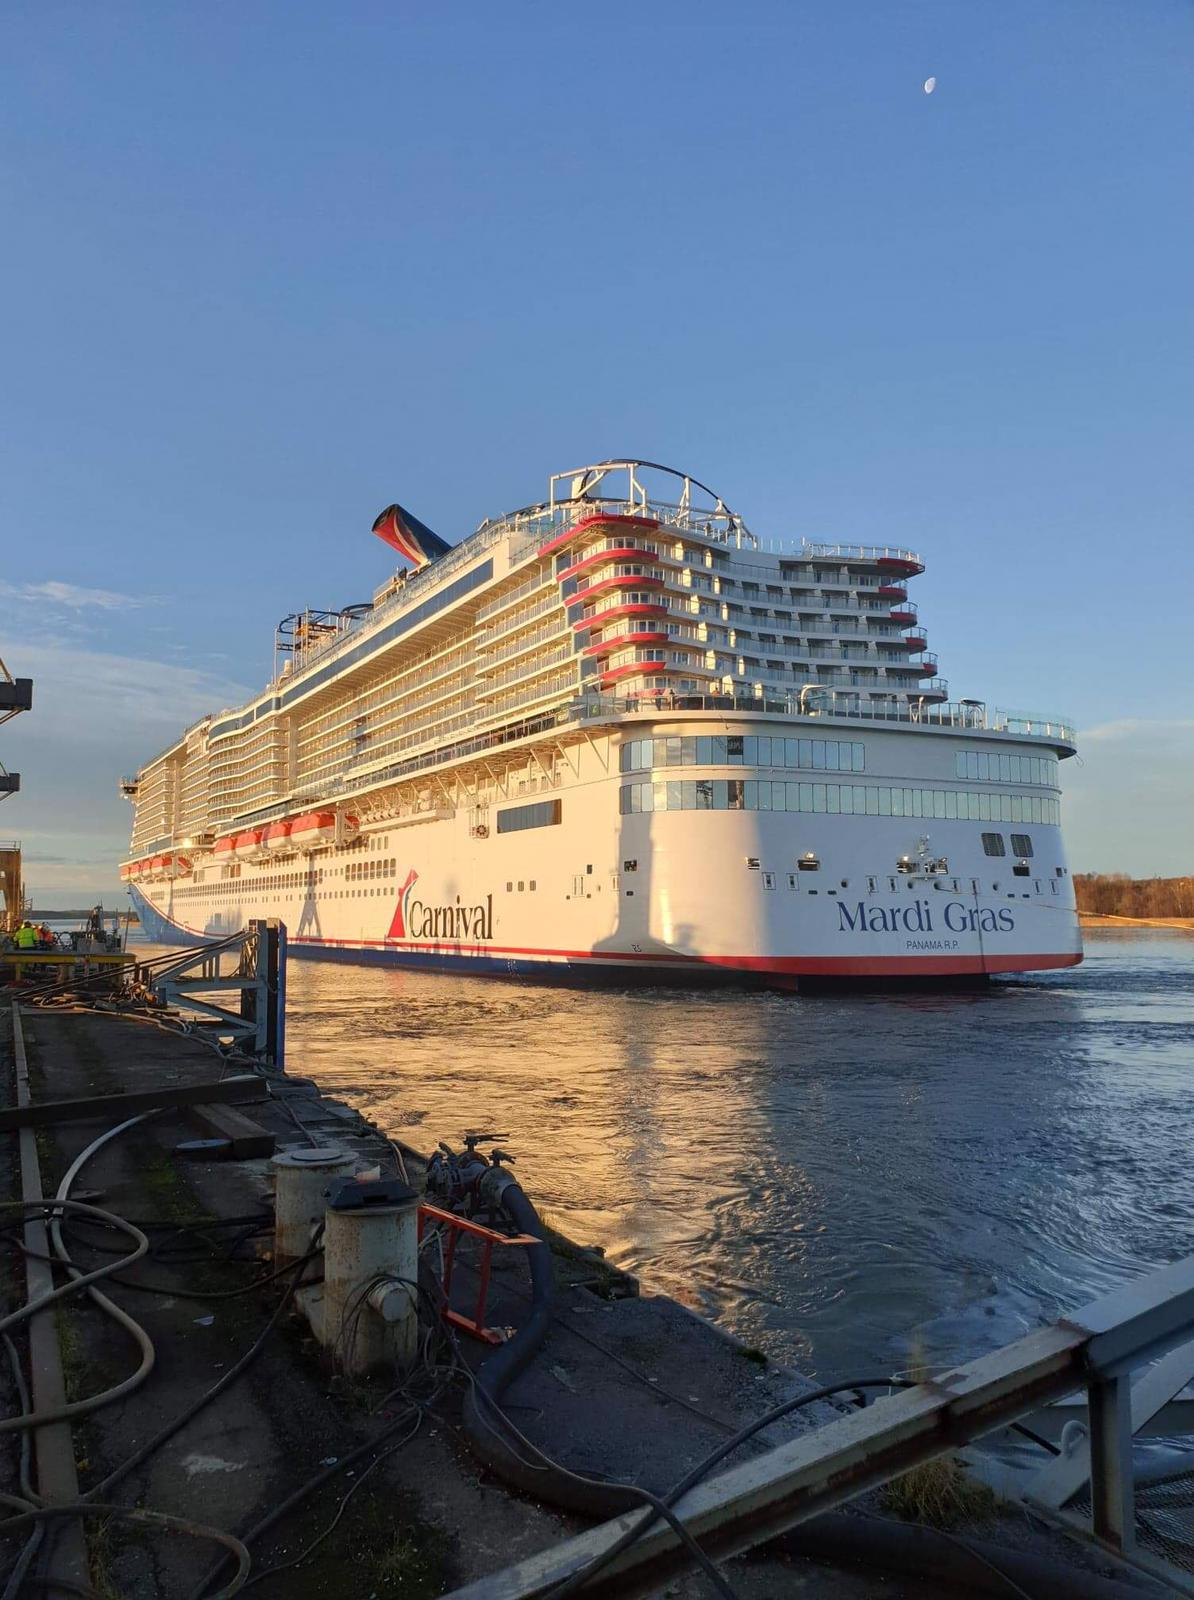 Carnival Cruise Line Takes Delivery of Mardi Gras